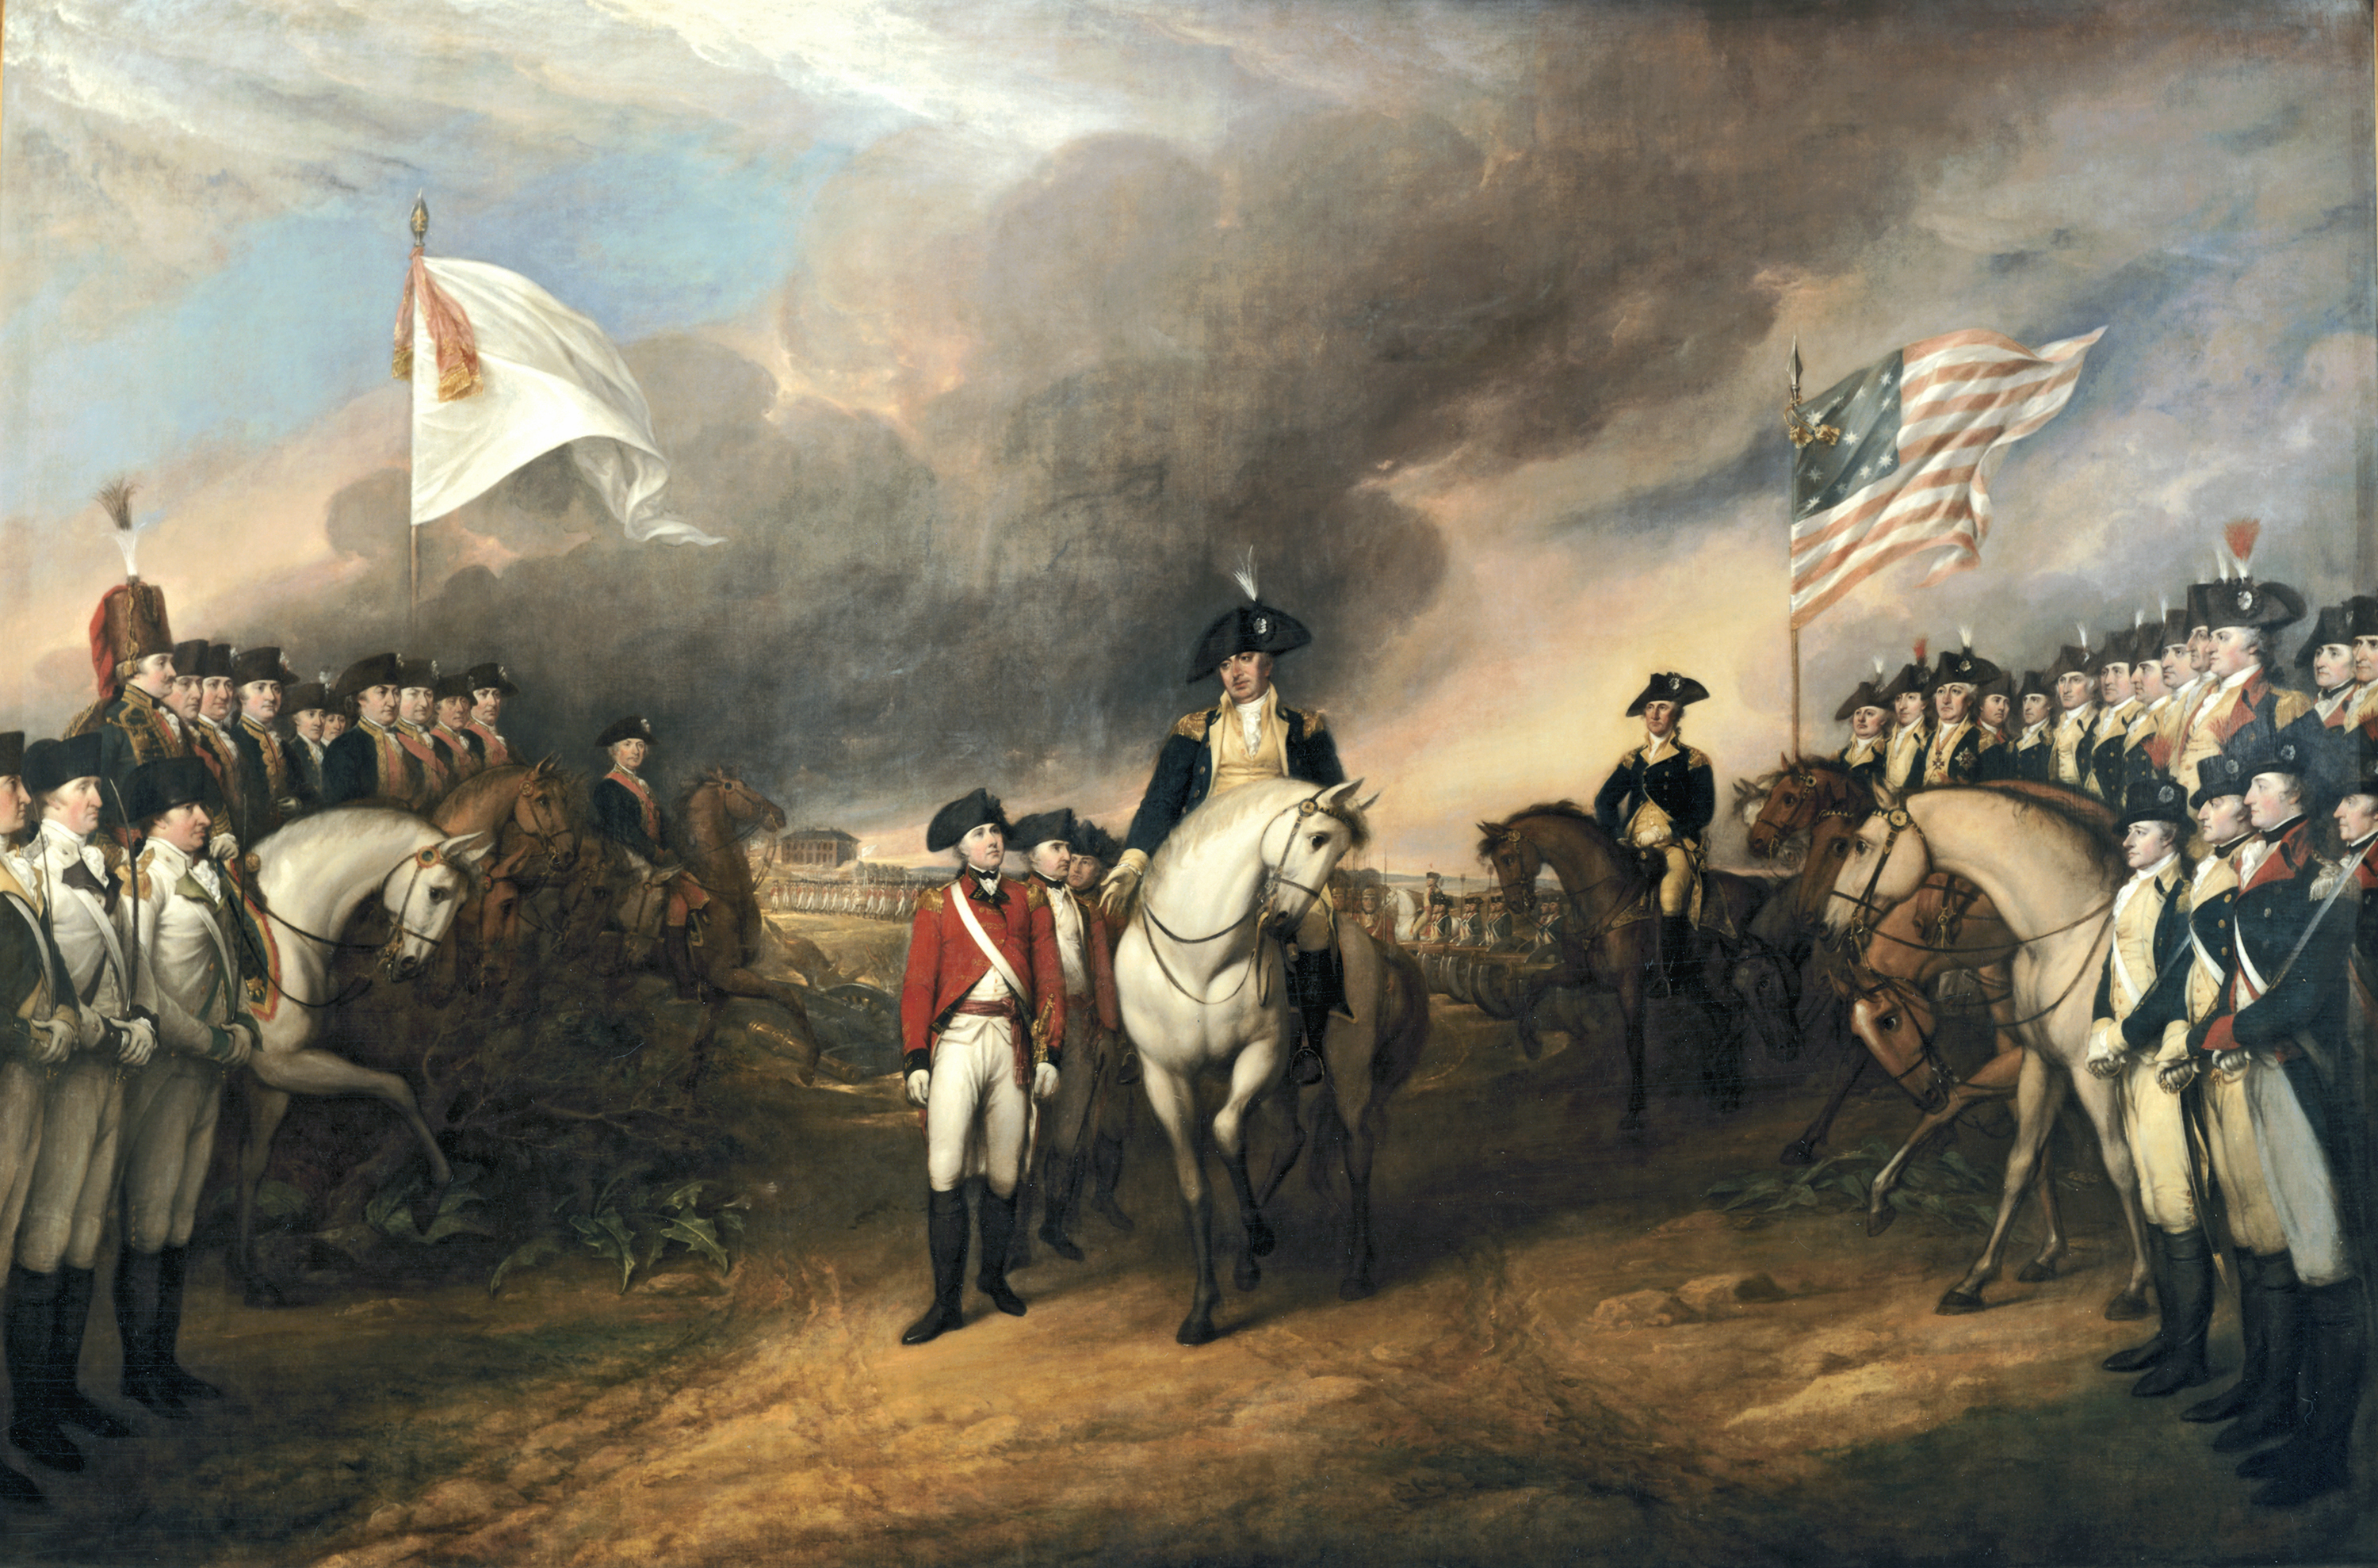 the American Revolution is seen as a power grab by white Europeans